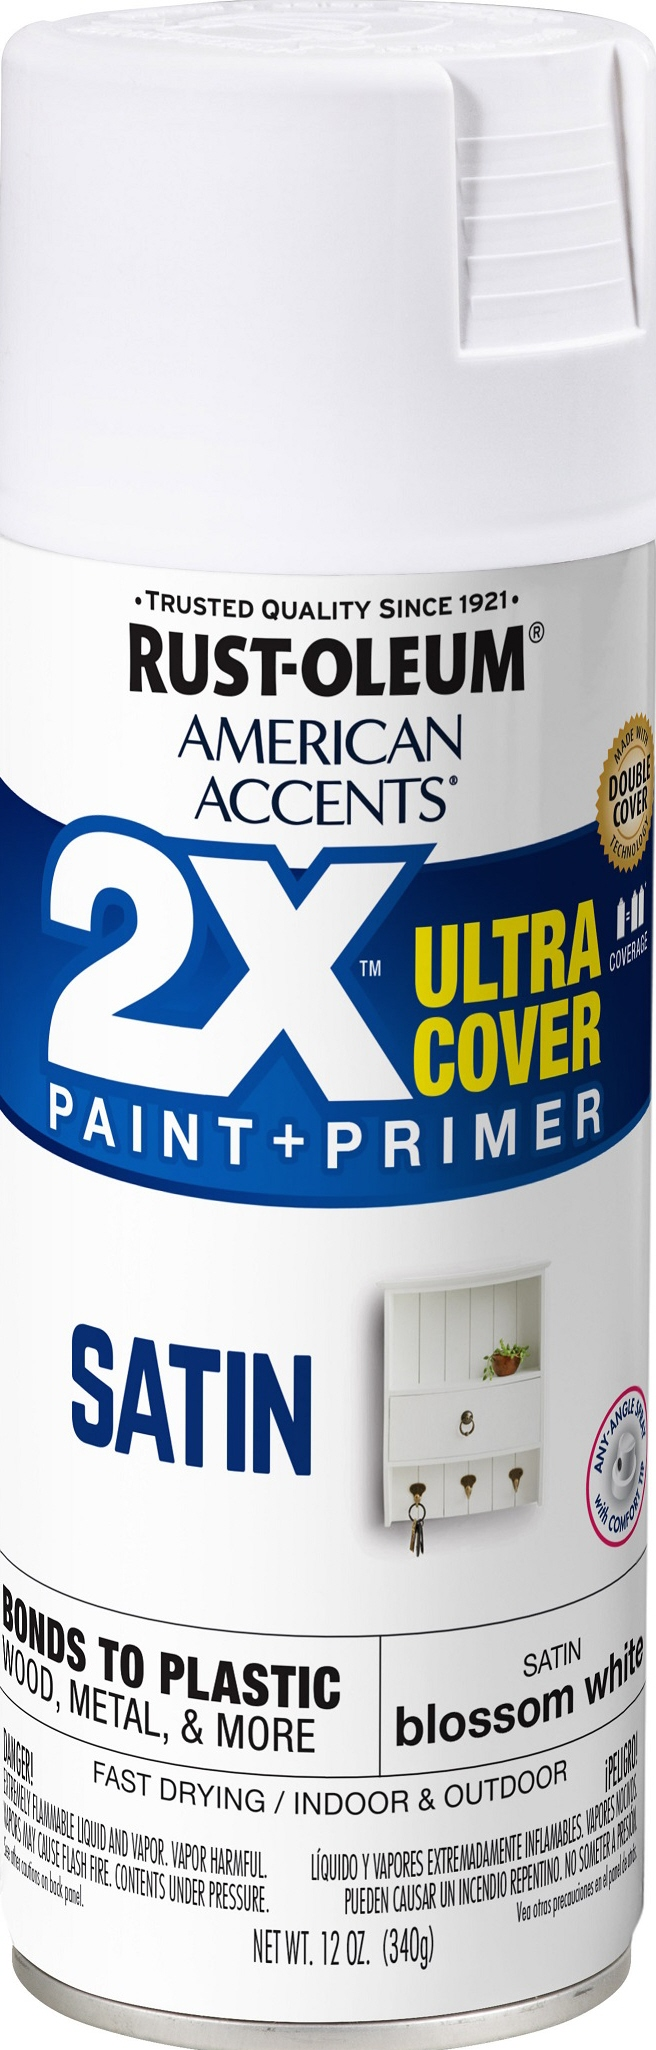 (3 Pack) Rust-Oleum American Accents Ultra Cover 2X Satin Blossom White Spray Paint and Primer in 1, 12 oz